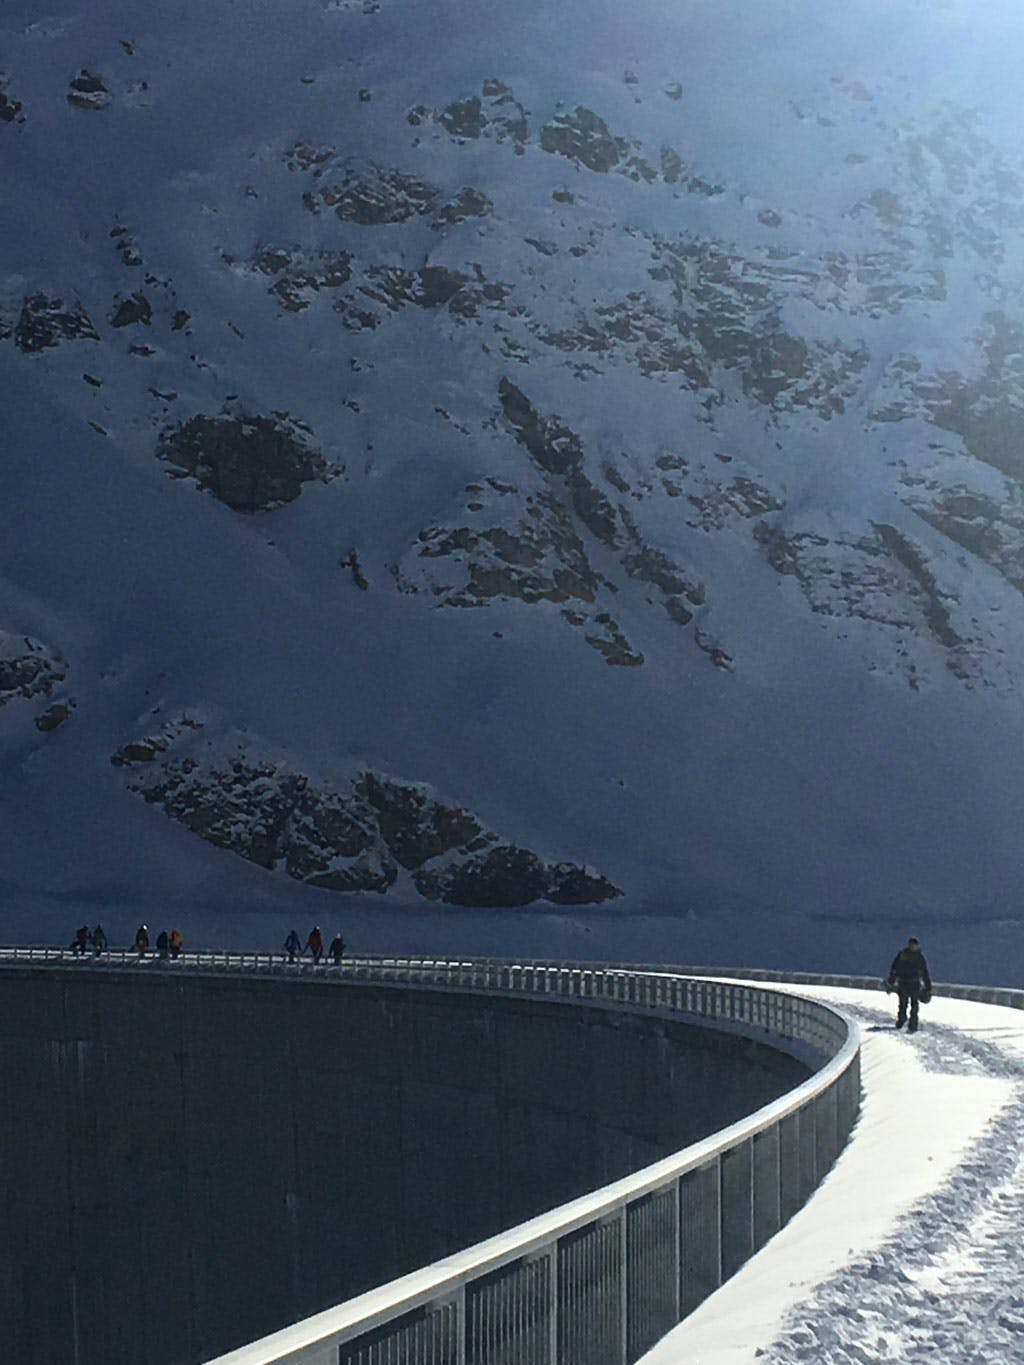 snowboarders hiking next to dam